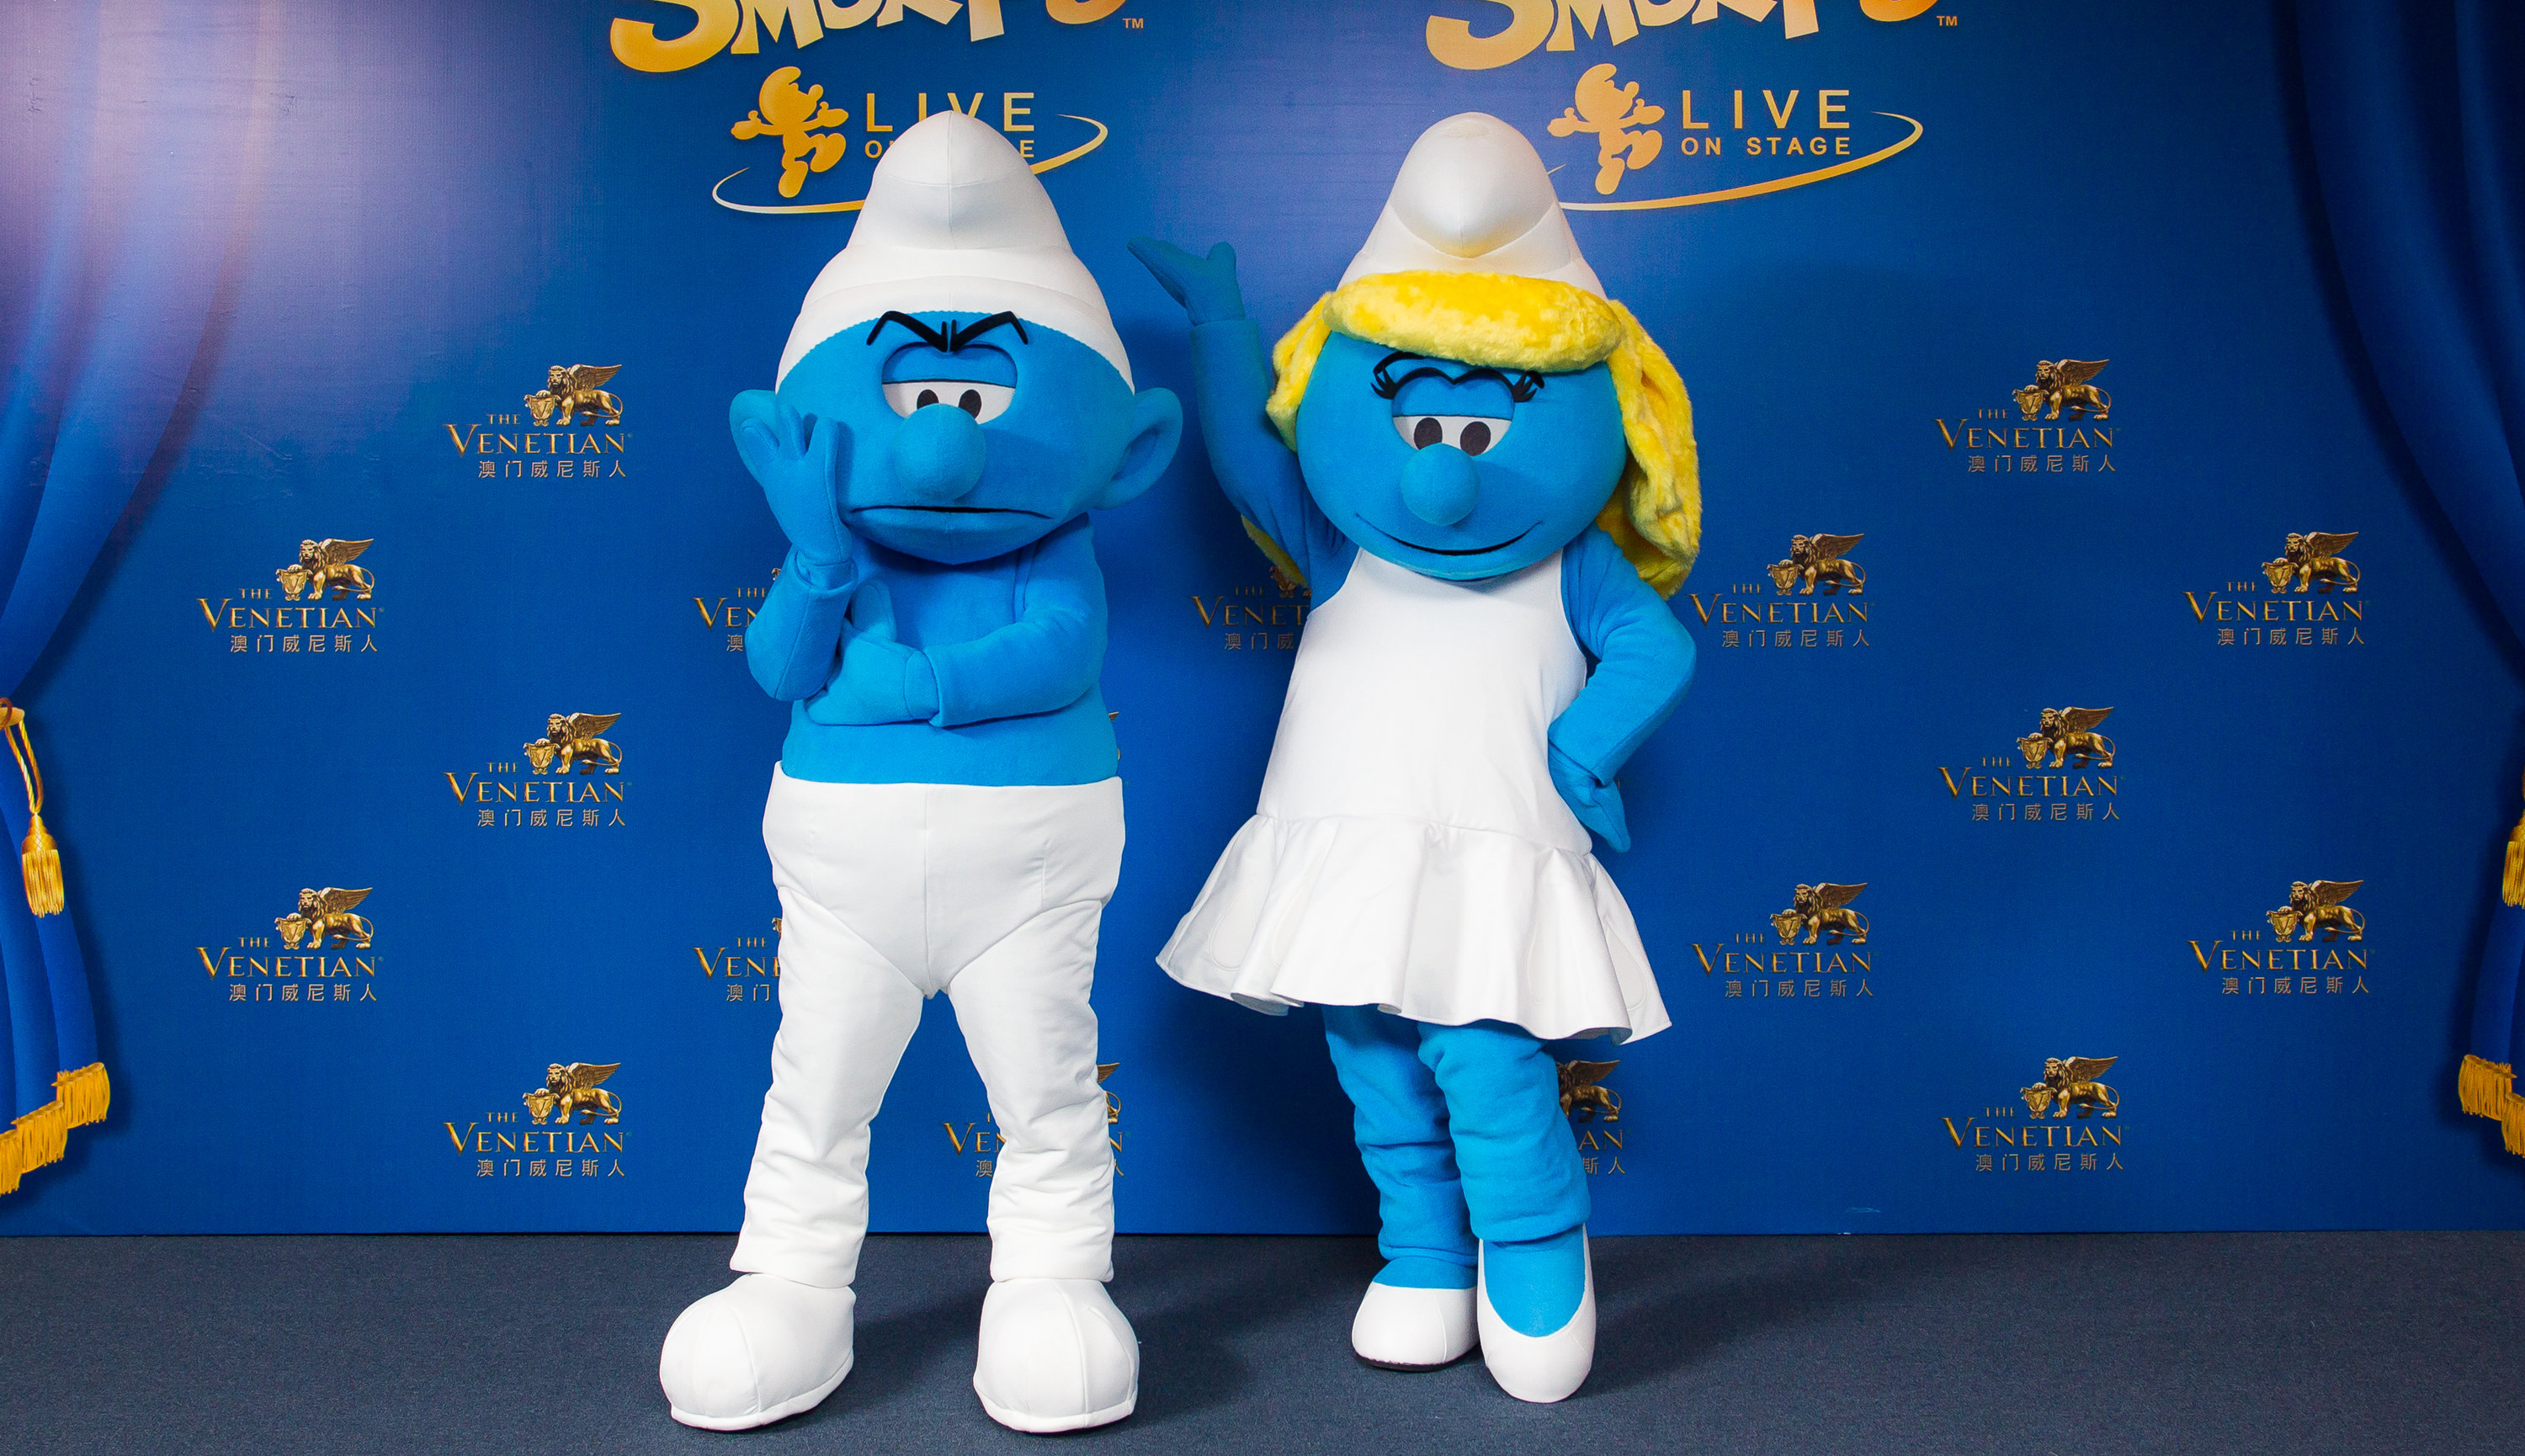 Les_Schtroumpfs_personnages_mascottes_smurfs_evasion_communication_agence_evenement_show_event_smurfs_costumes_character_imps_Sony_Pictures_France_Expendo_centre_commercial_animation_006